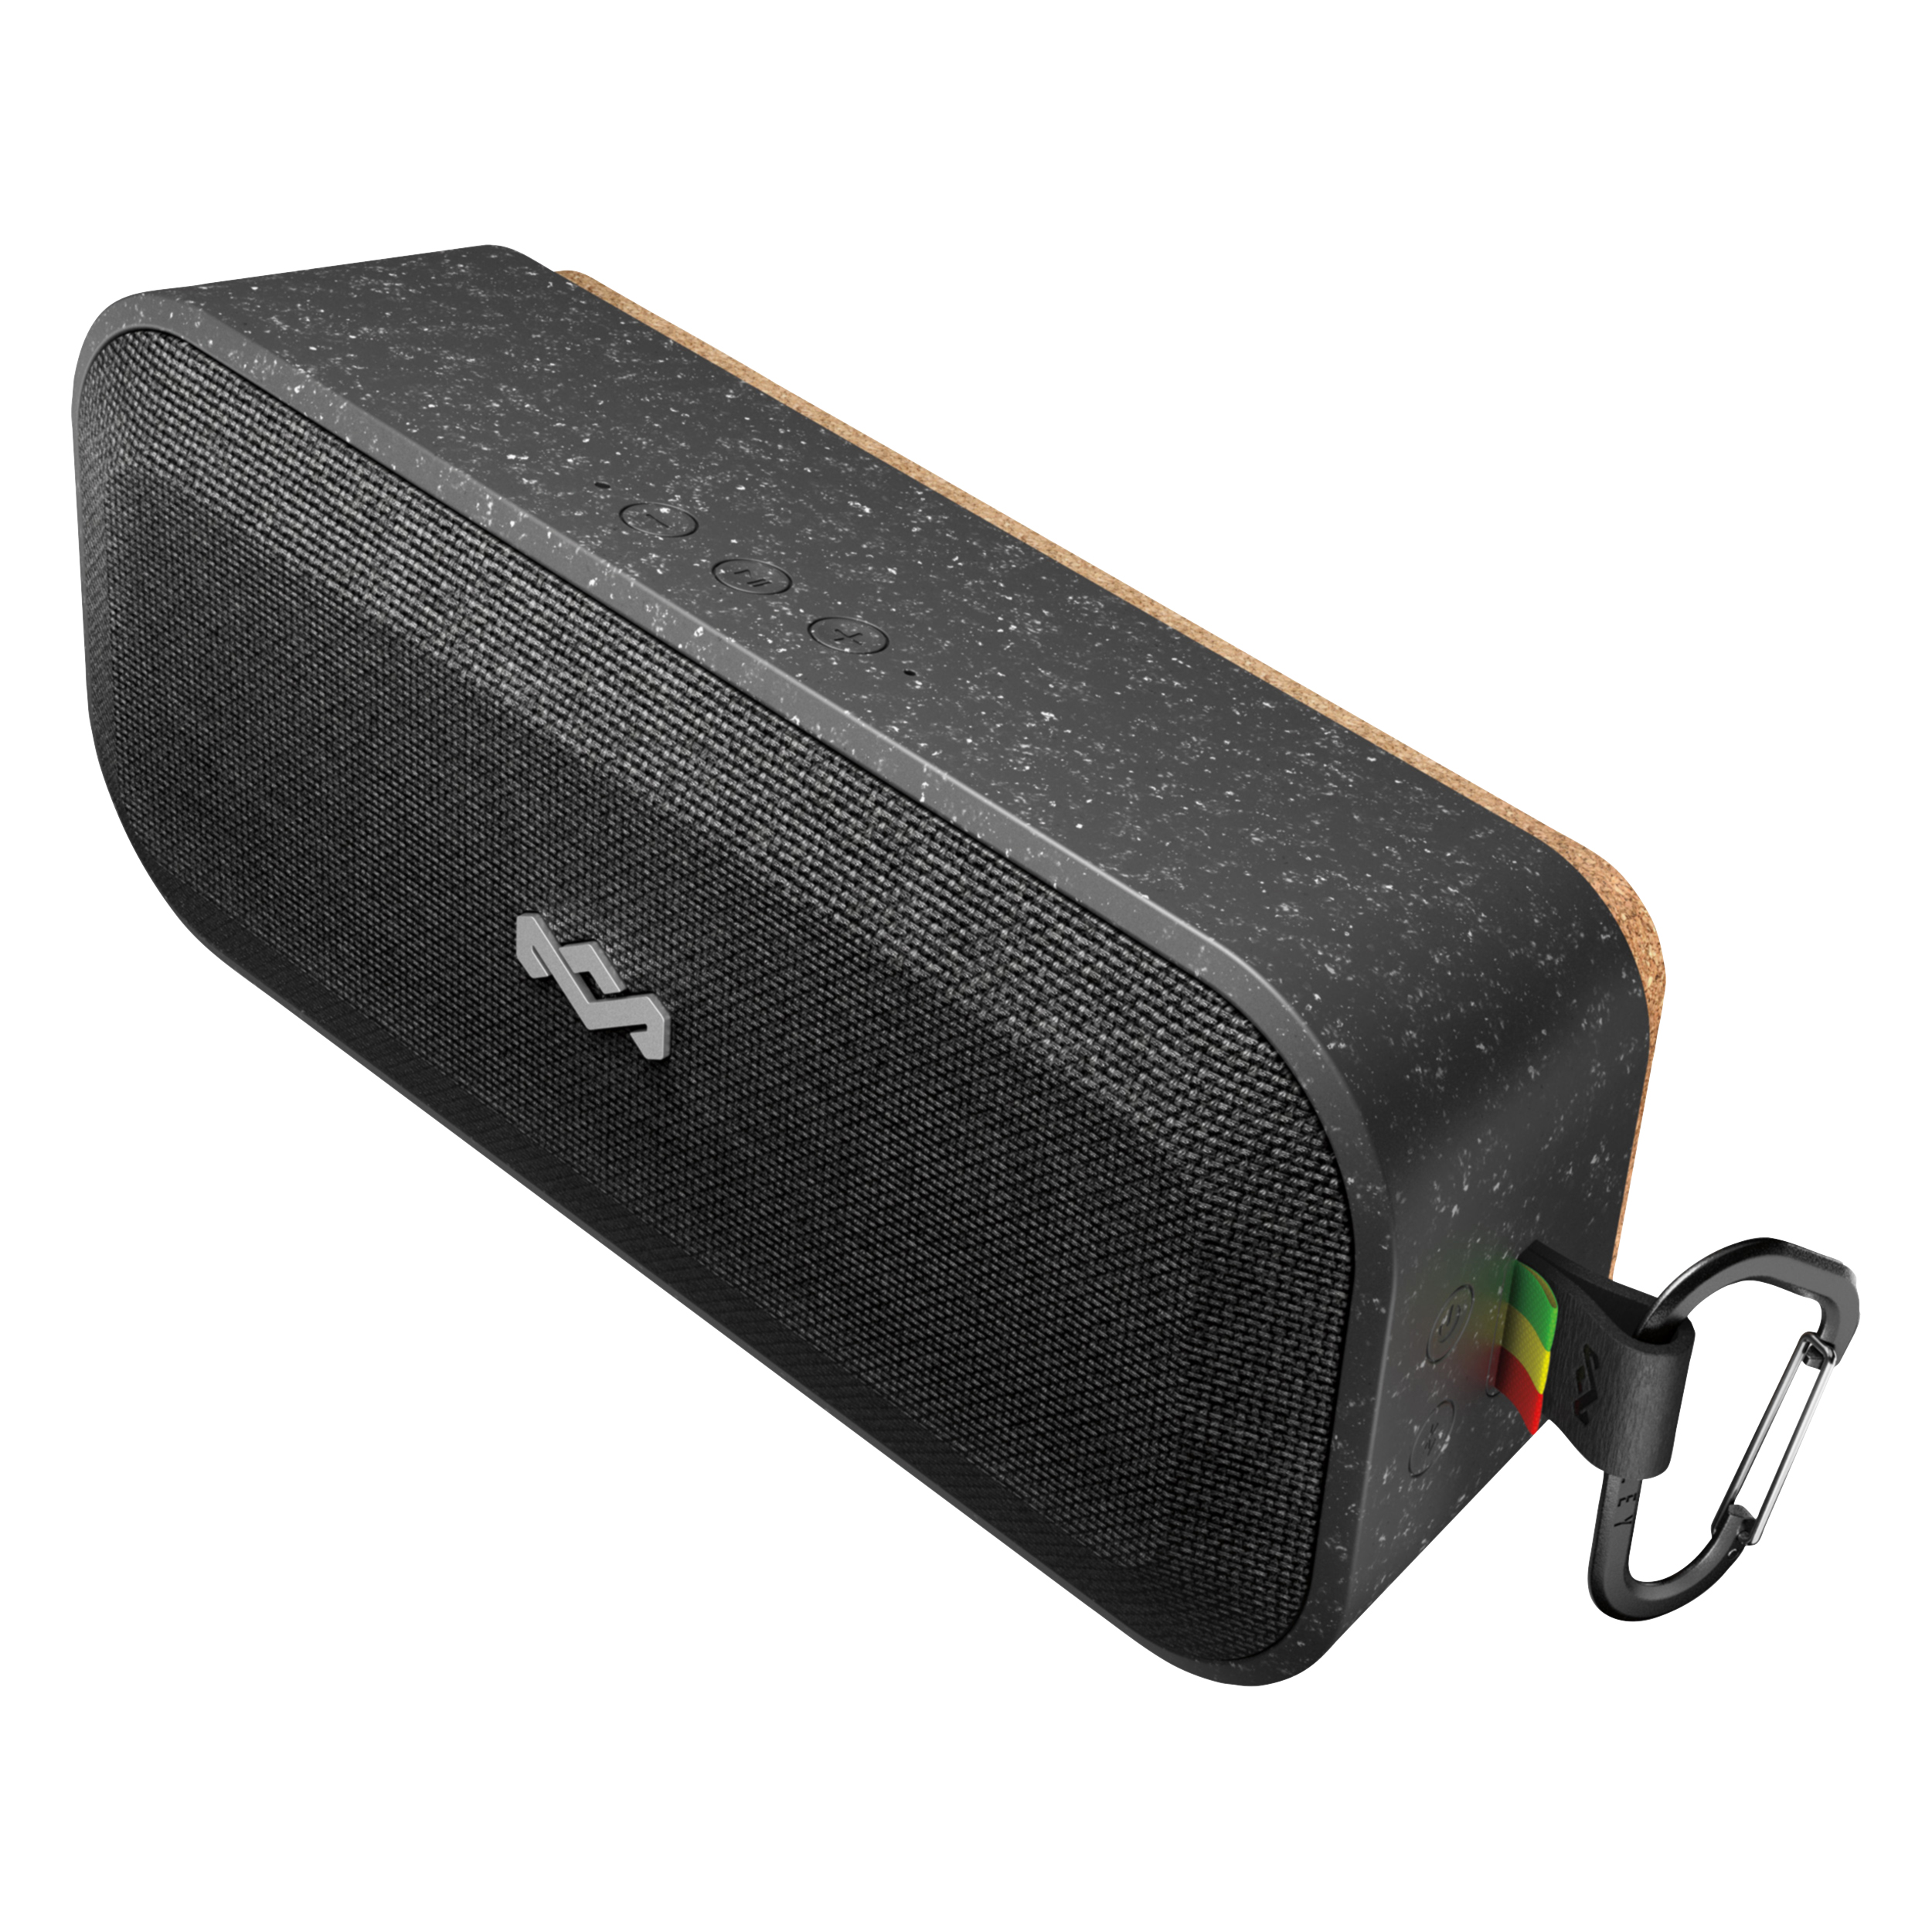 "House Of Marley Wireless Speaker  - Bluetooth connectivity - Dual 1.5"" drivers and dual passive radiators provide strong, high-quality highs and lows - Built-in speakerphone"